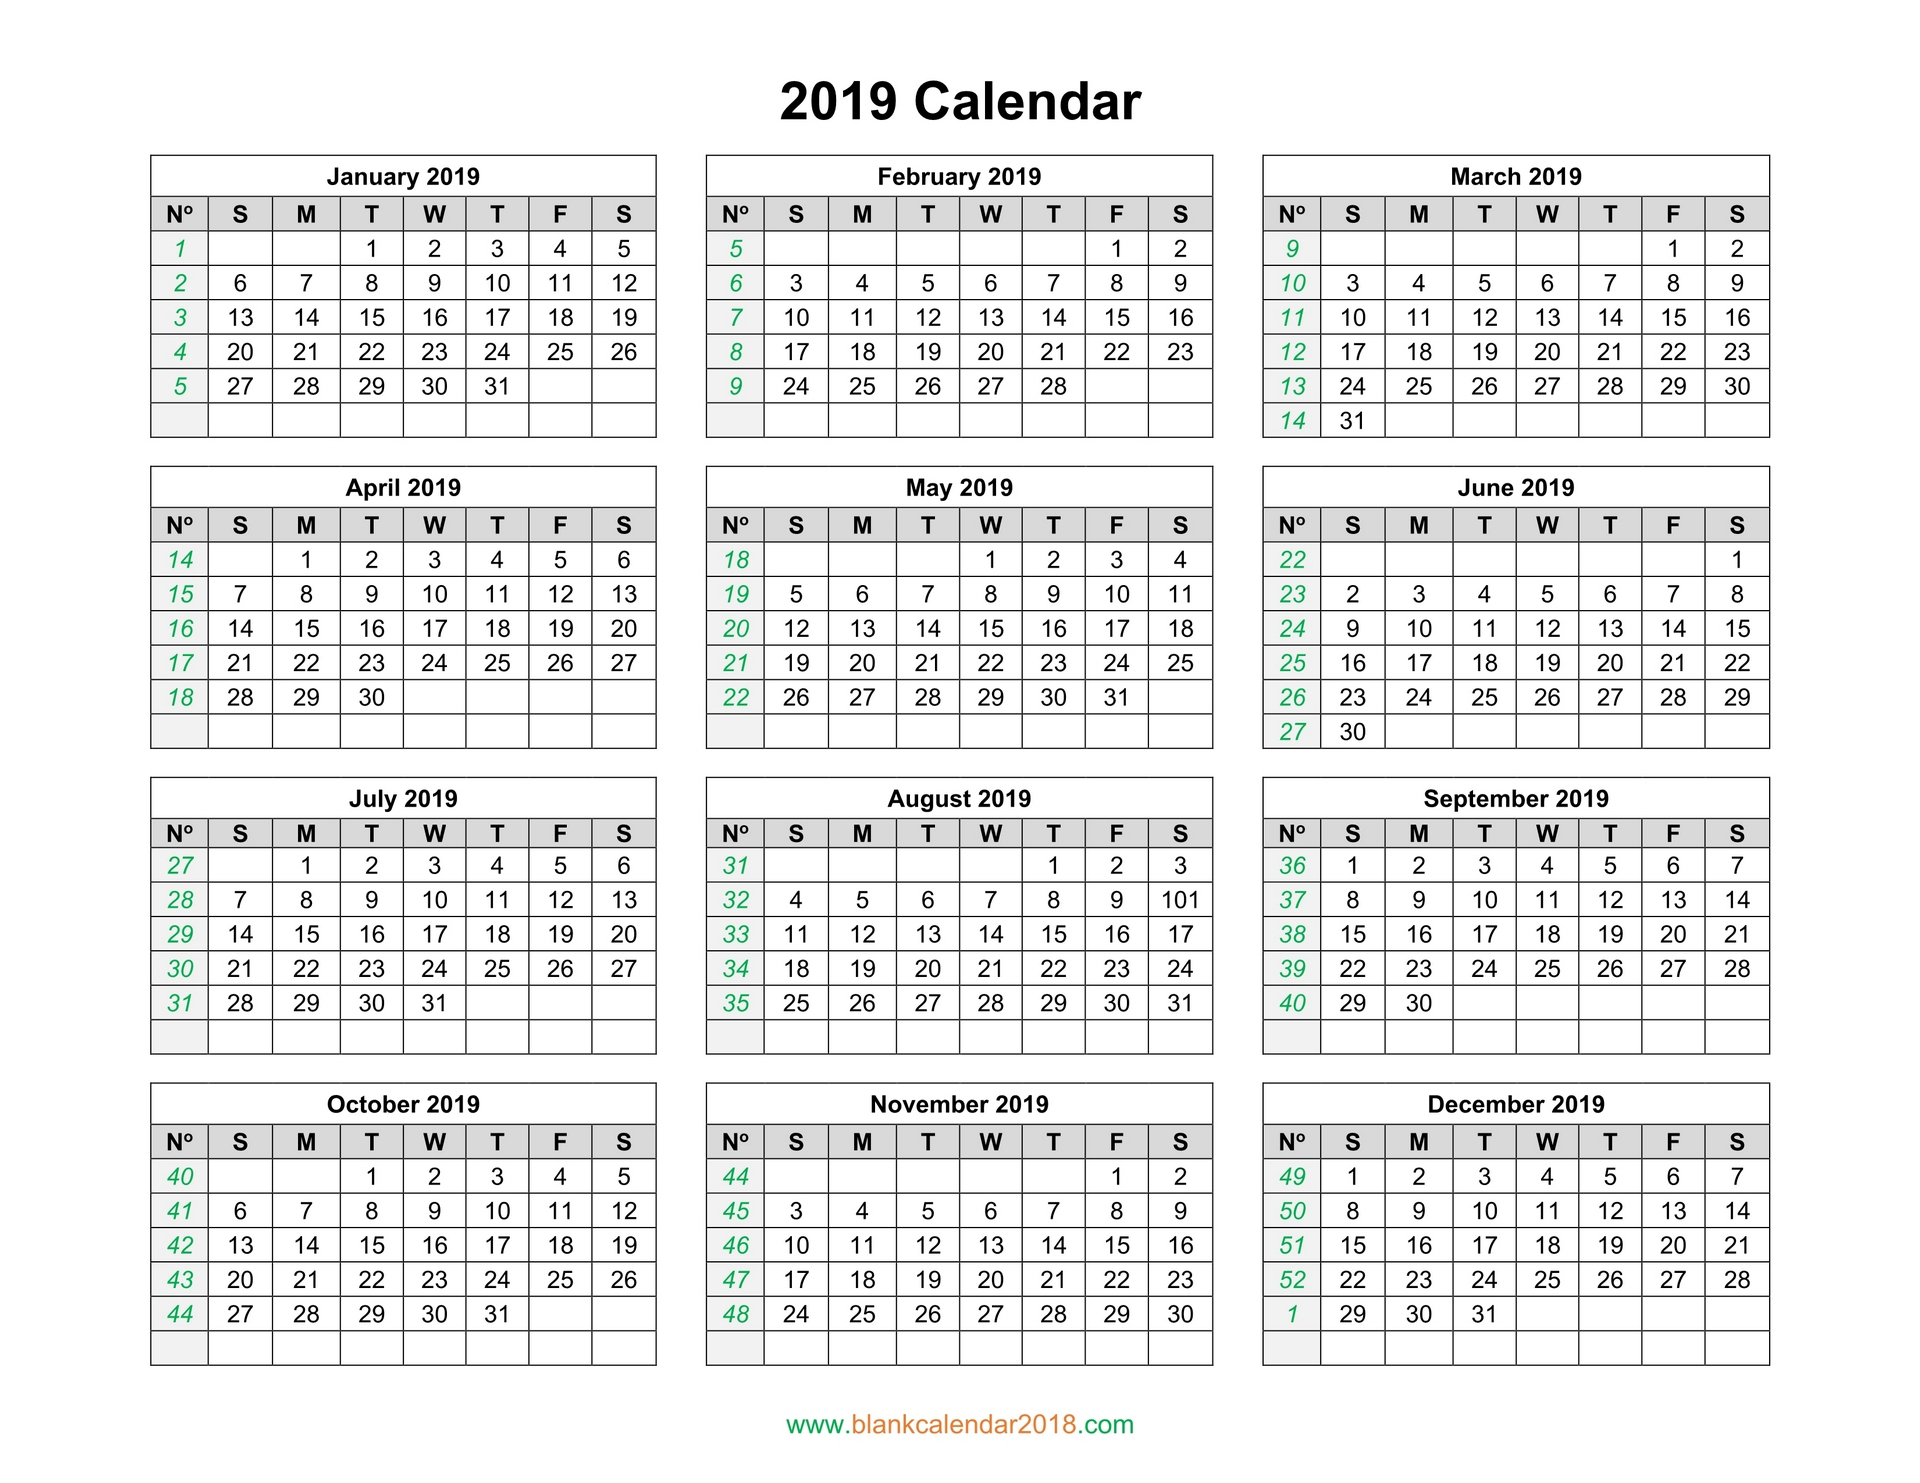 Blank Calendar 2019 throughout Printable Year Calendar 2019 - 2020 With Space To Write